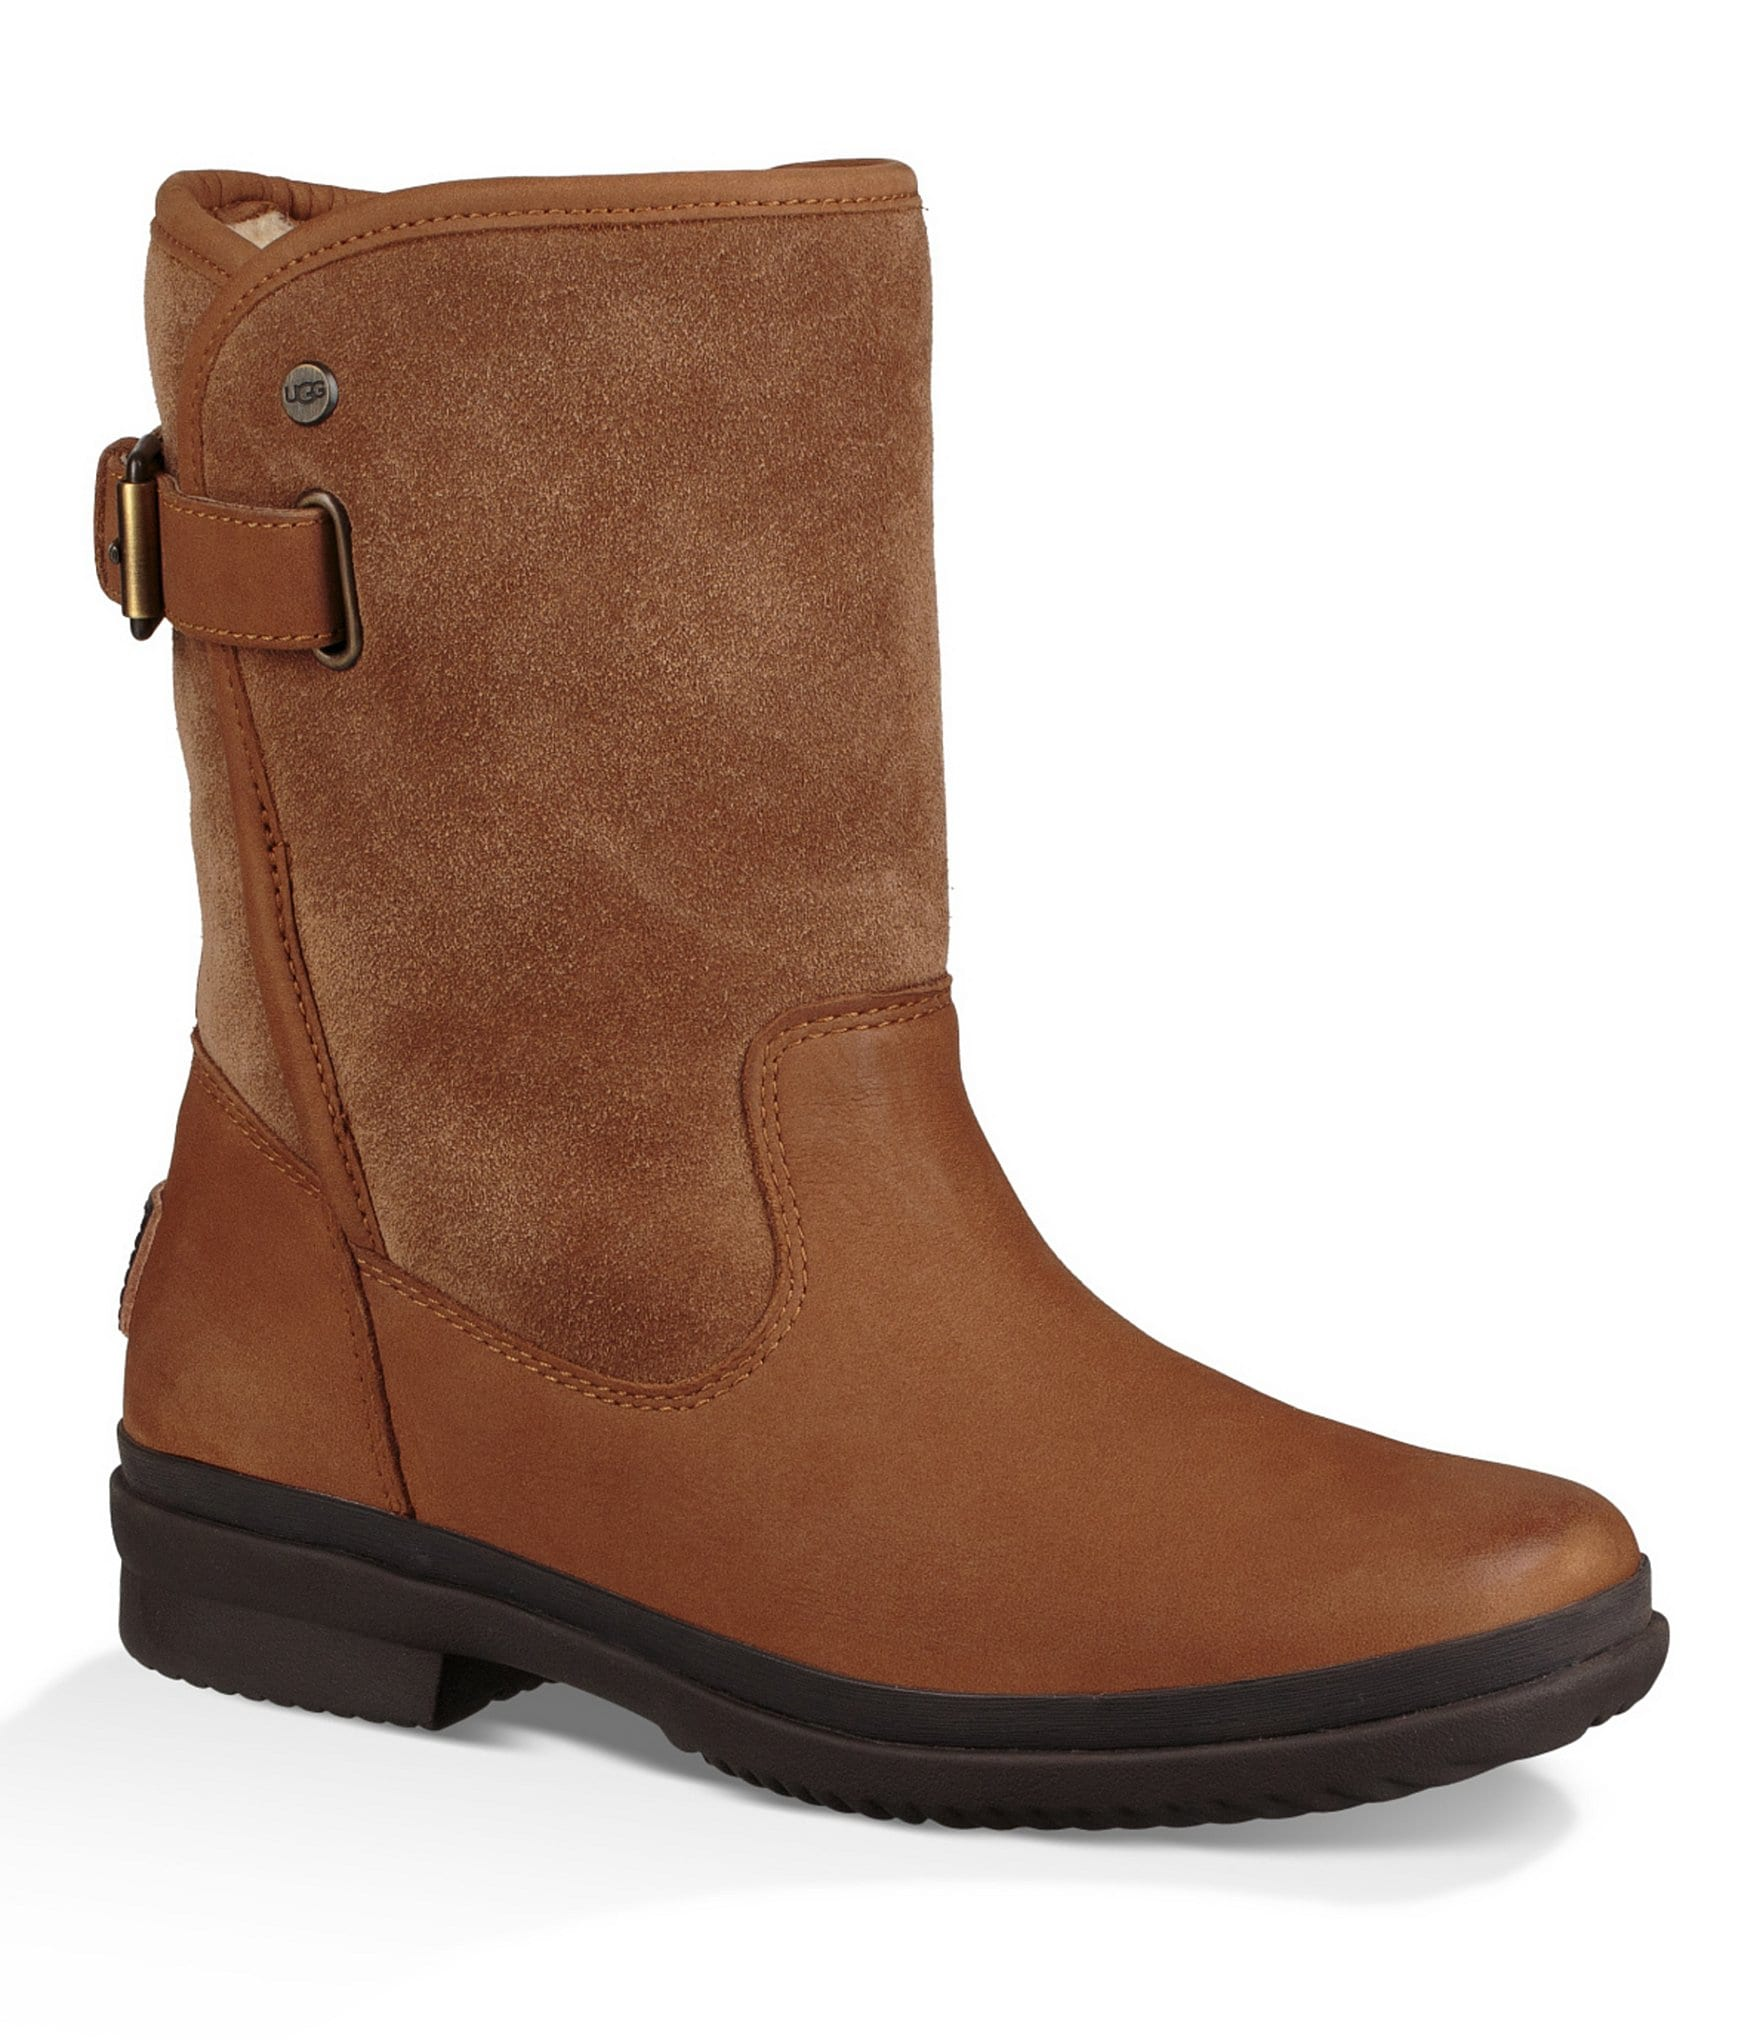 Ugg Boots. Showing 48 of results that match your query. Search Product Result. Product - UGG Women's Classic Short II Boots Product Image. Price $ 95 - $ Product Title. UGG Women's Classic Short II Boots See Details. Product - Ugg Women's Bailey Bow II Navy Ankle-High Suede Boot - 9M. Product Image. Price $ Product Title. Ugg Women's Bailey .